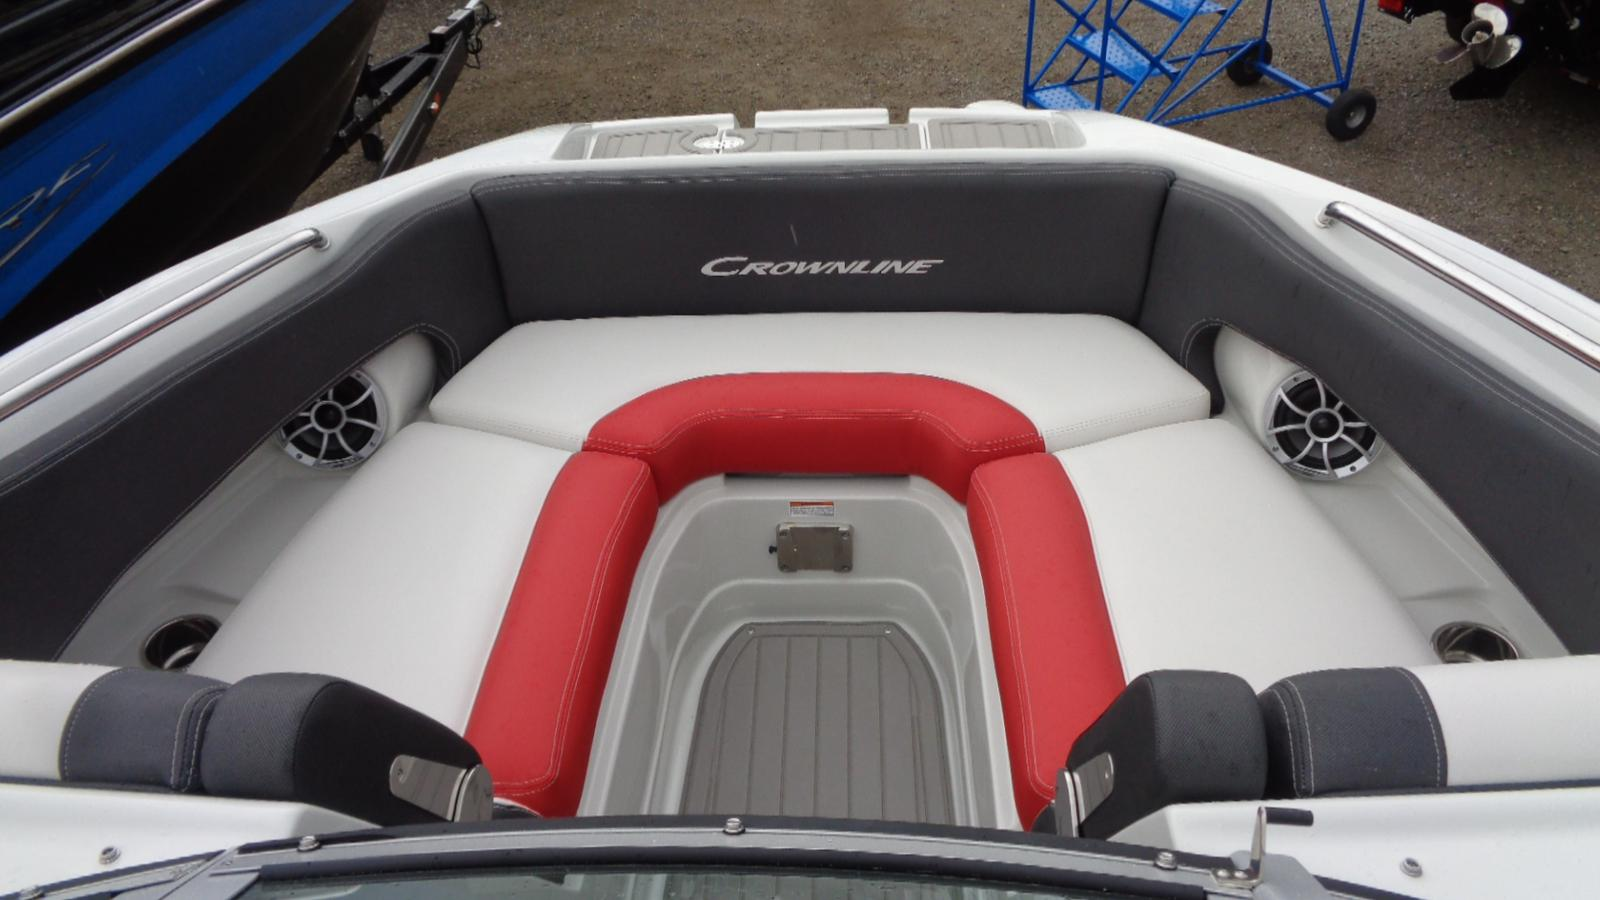 2019 Crownline E 235 SURF for sale in West Kelowna, BC